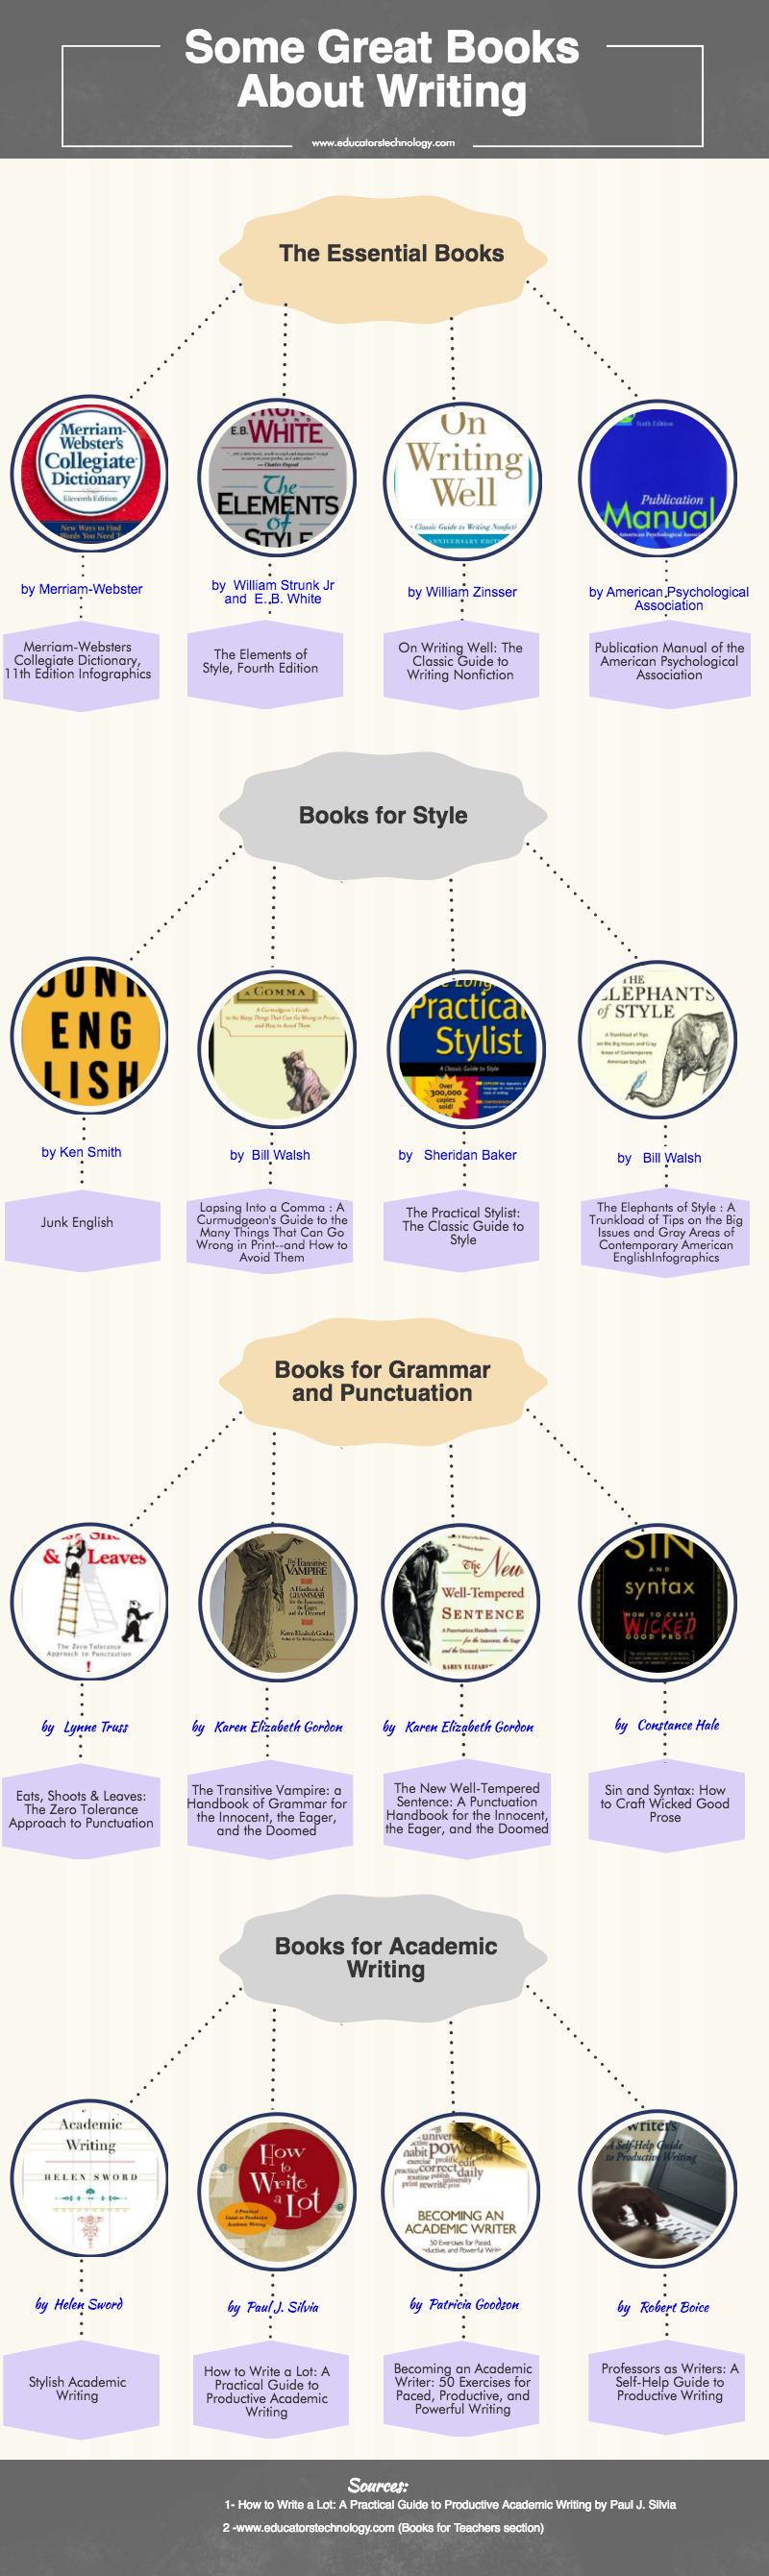 An Interesting Infographic Featuring 16 Great Writing